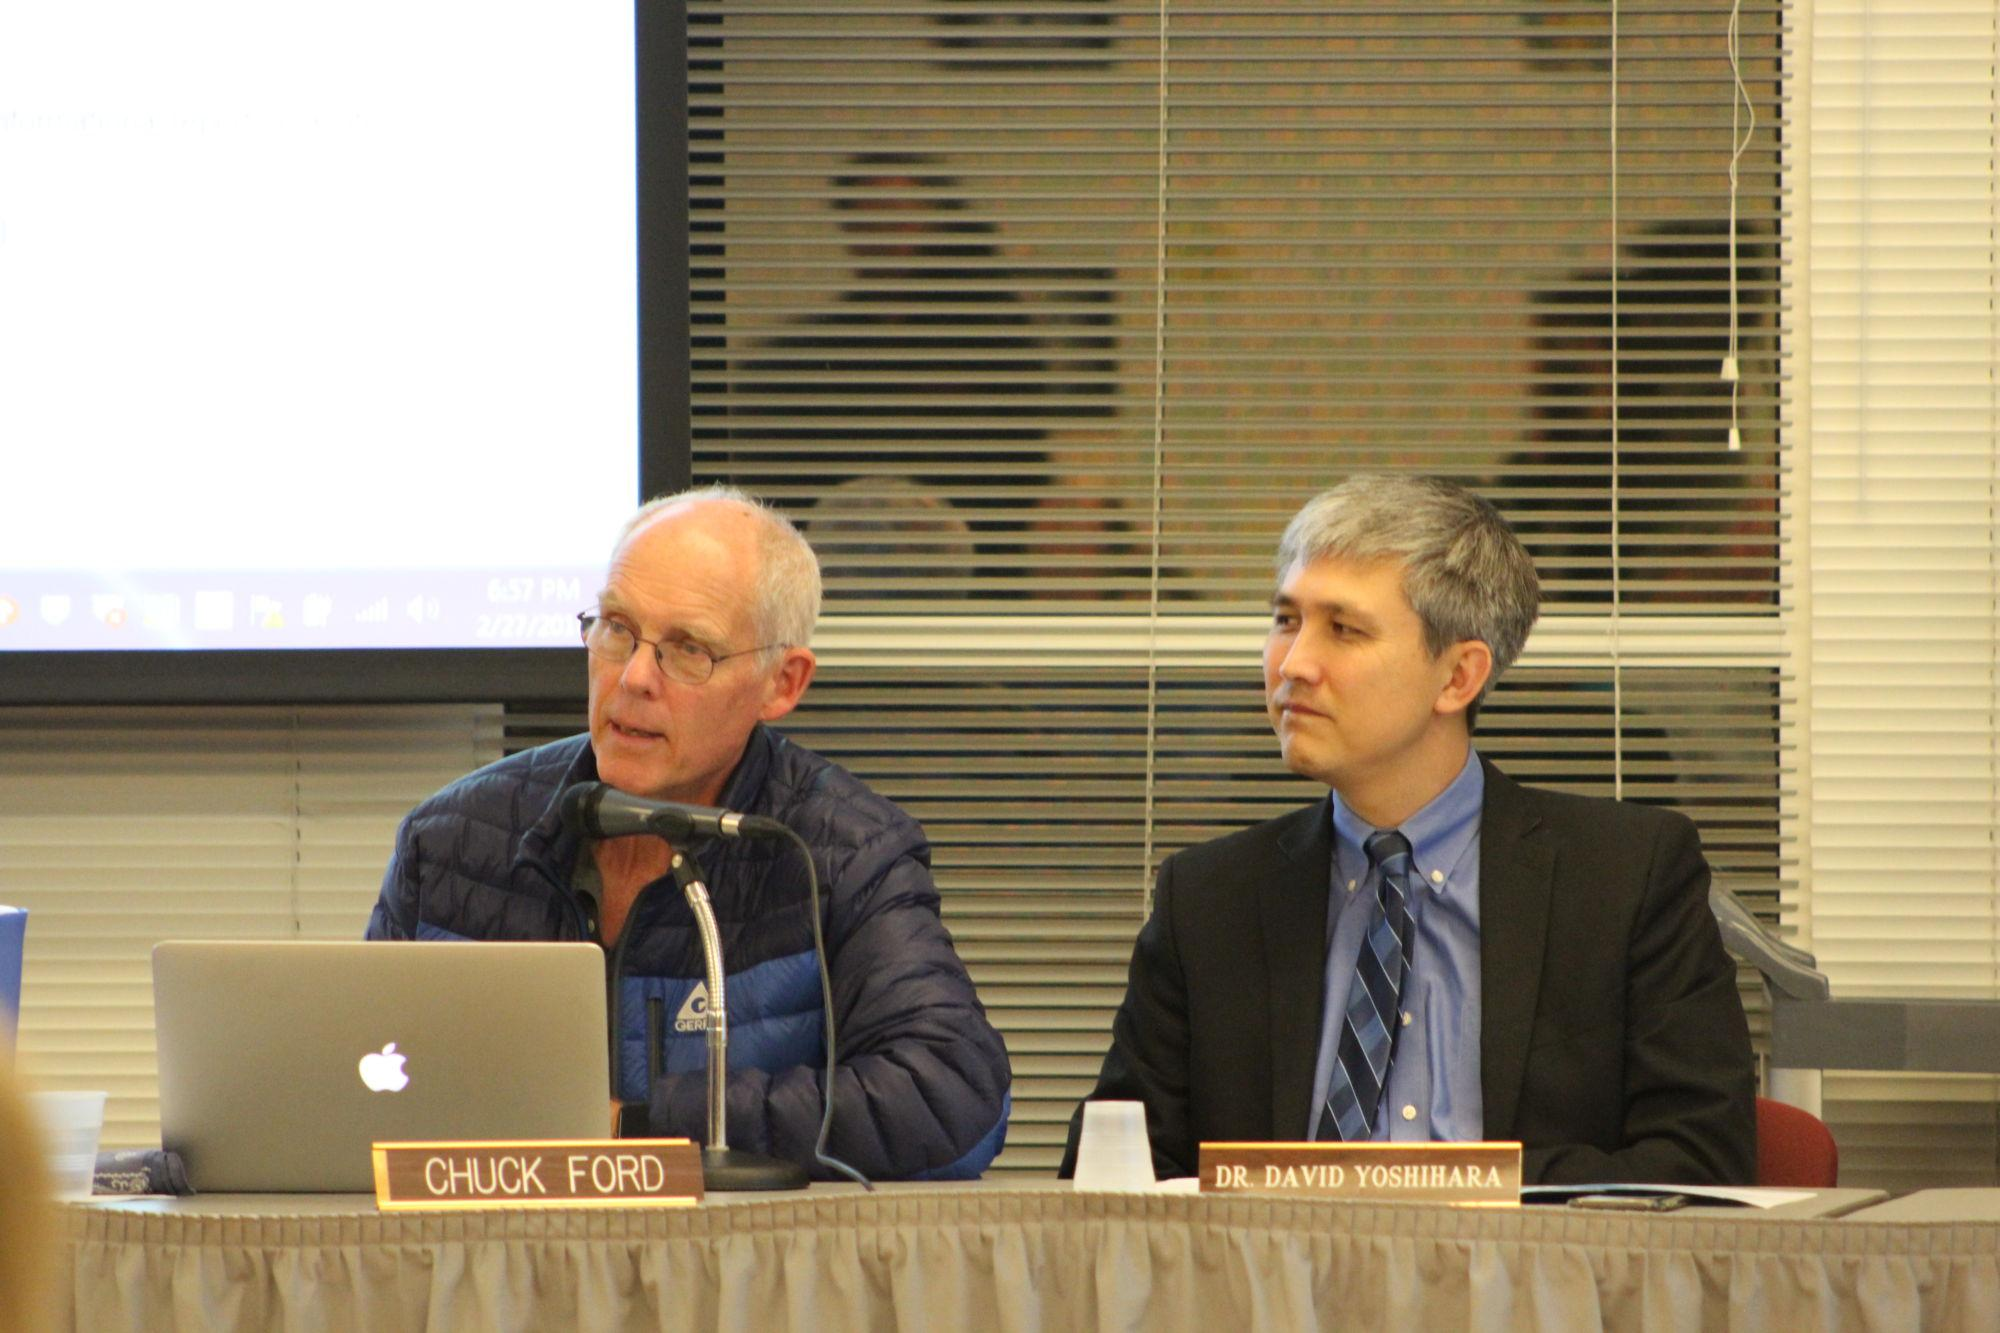 Superintendent+David+Yoshihara+and+Board+member+Chuck+Ford+listen+intently+at+the+last+board+meeting.